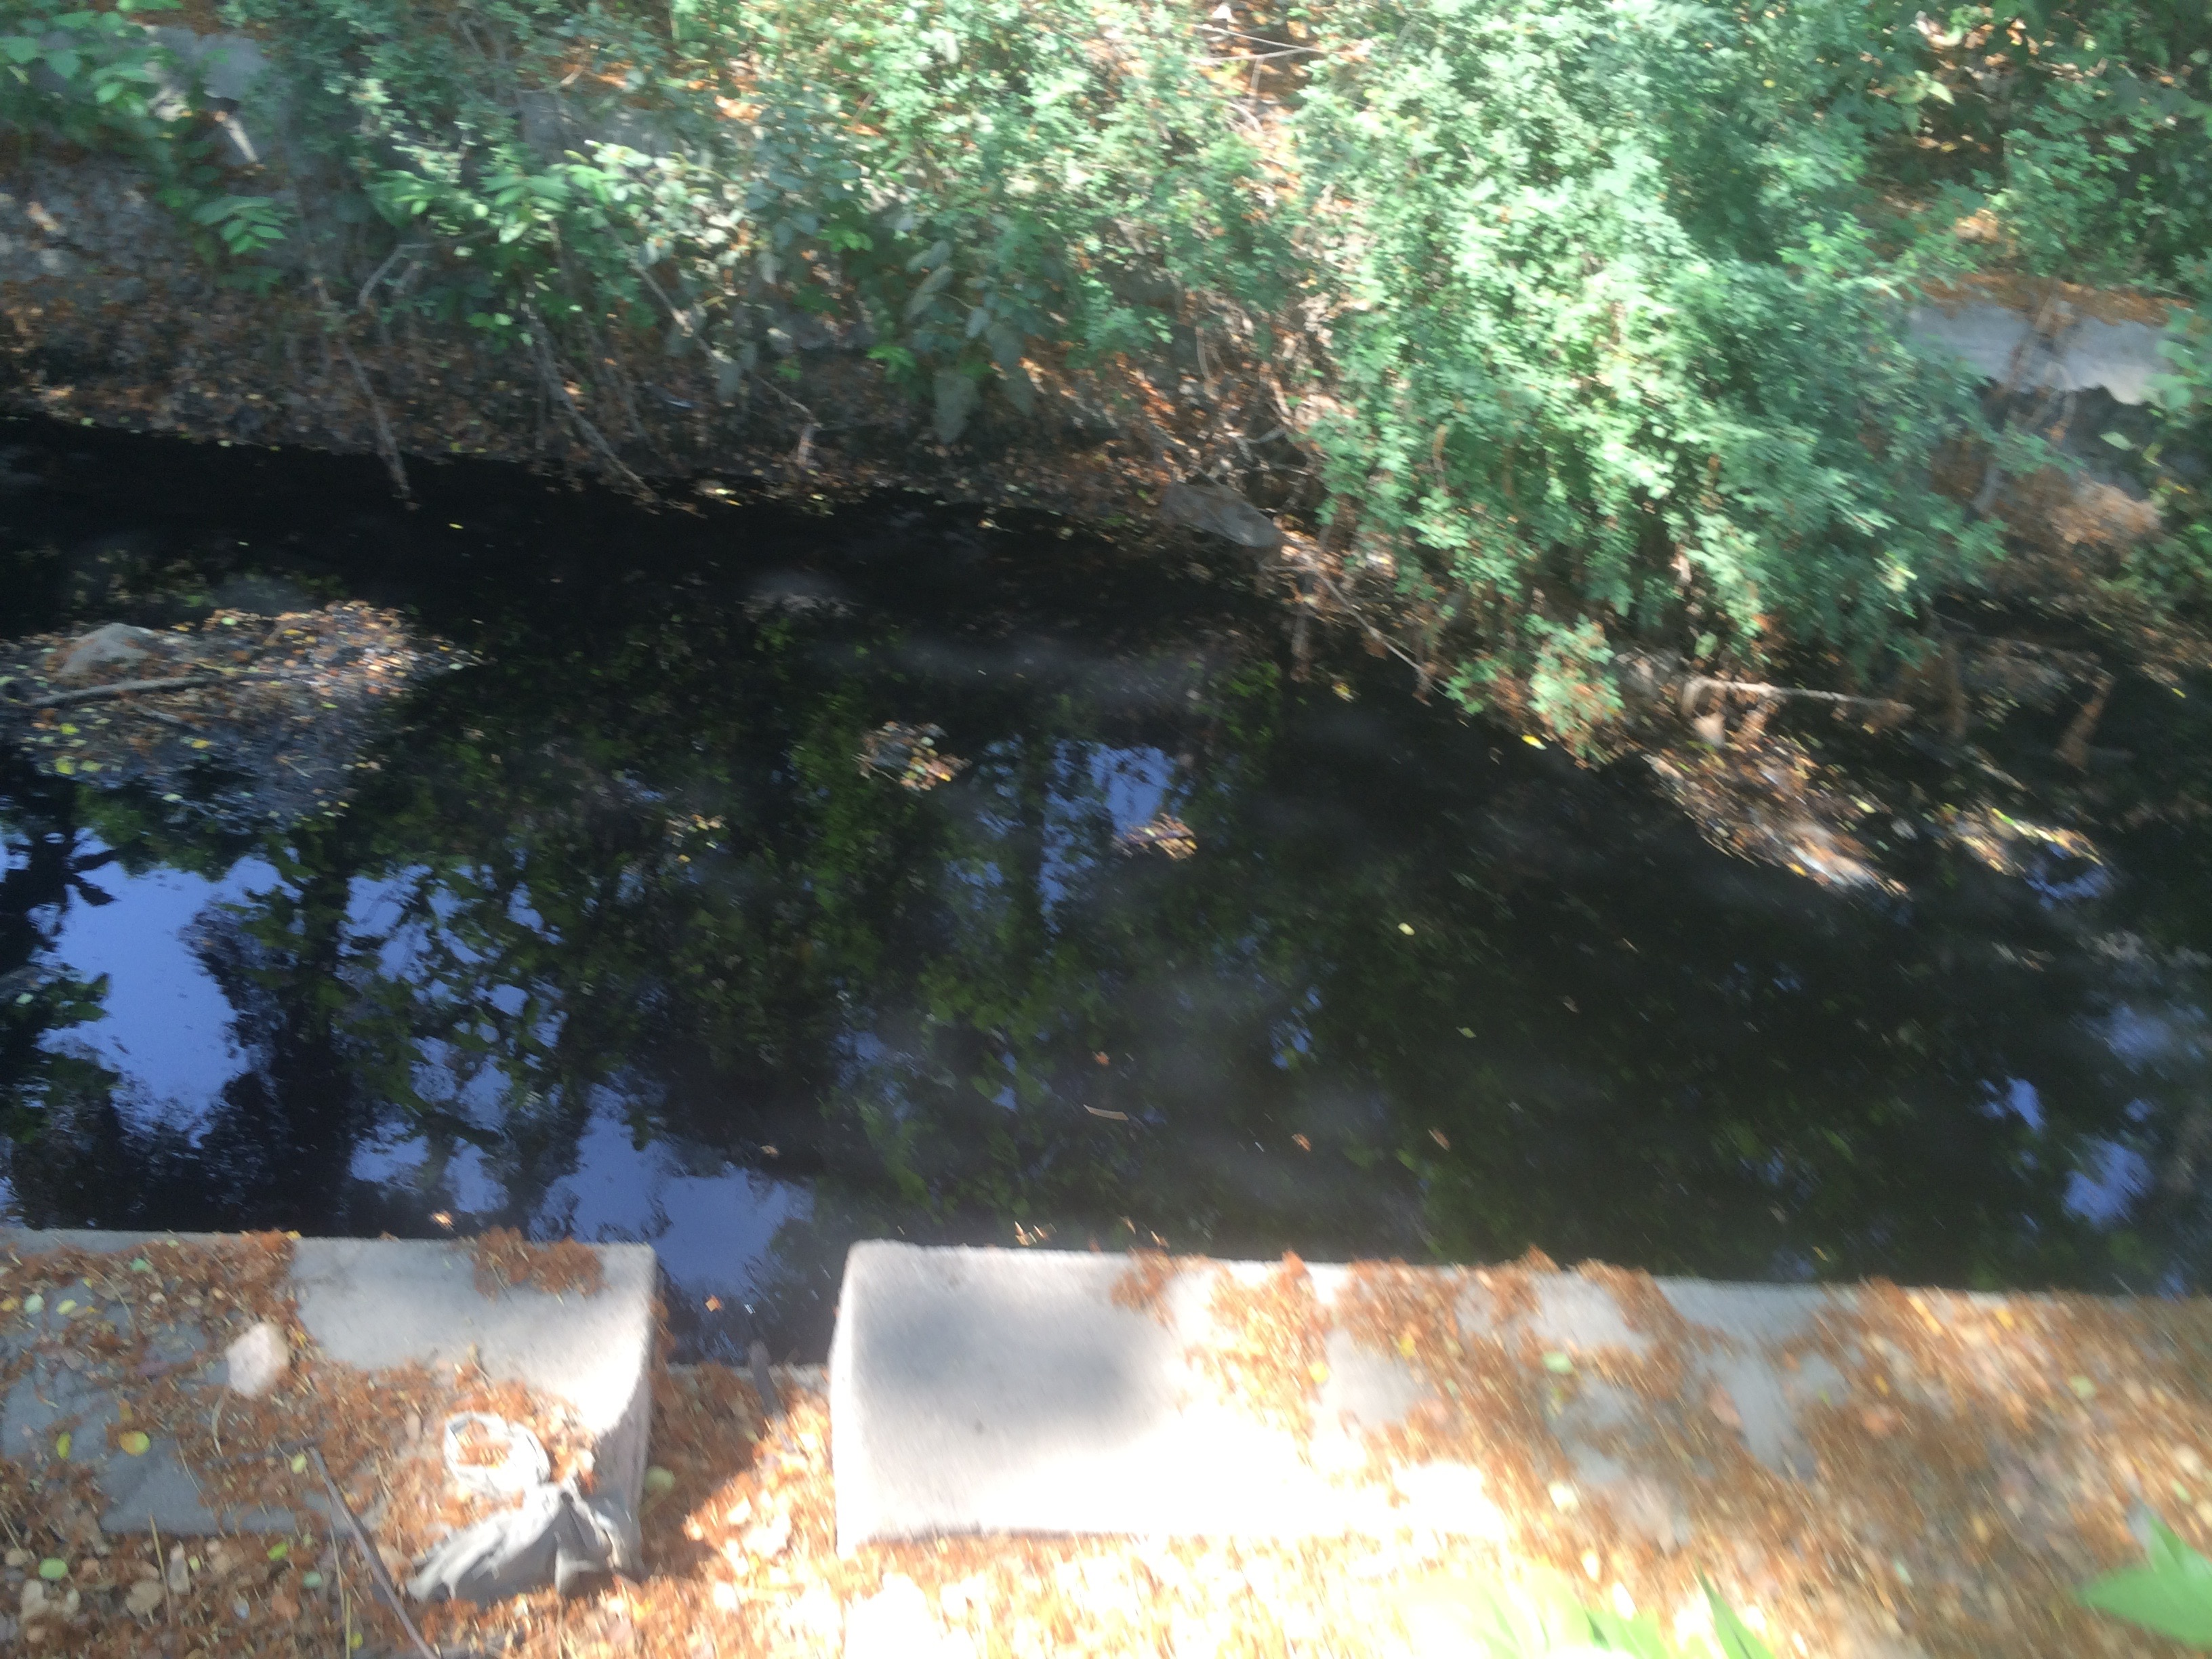 Open drain, polluted water